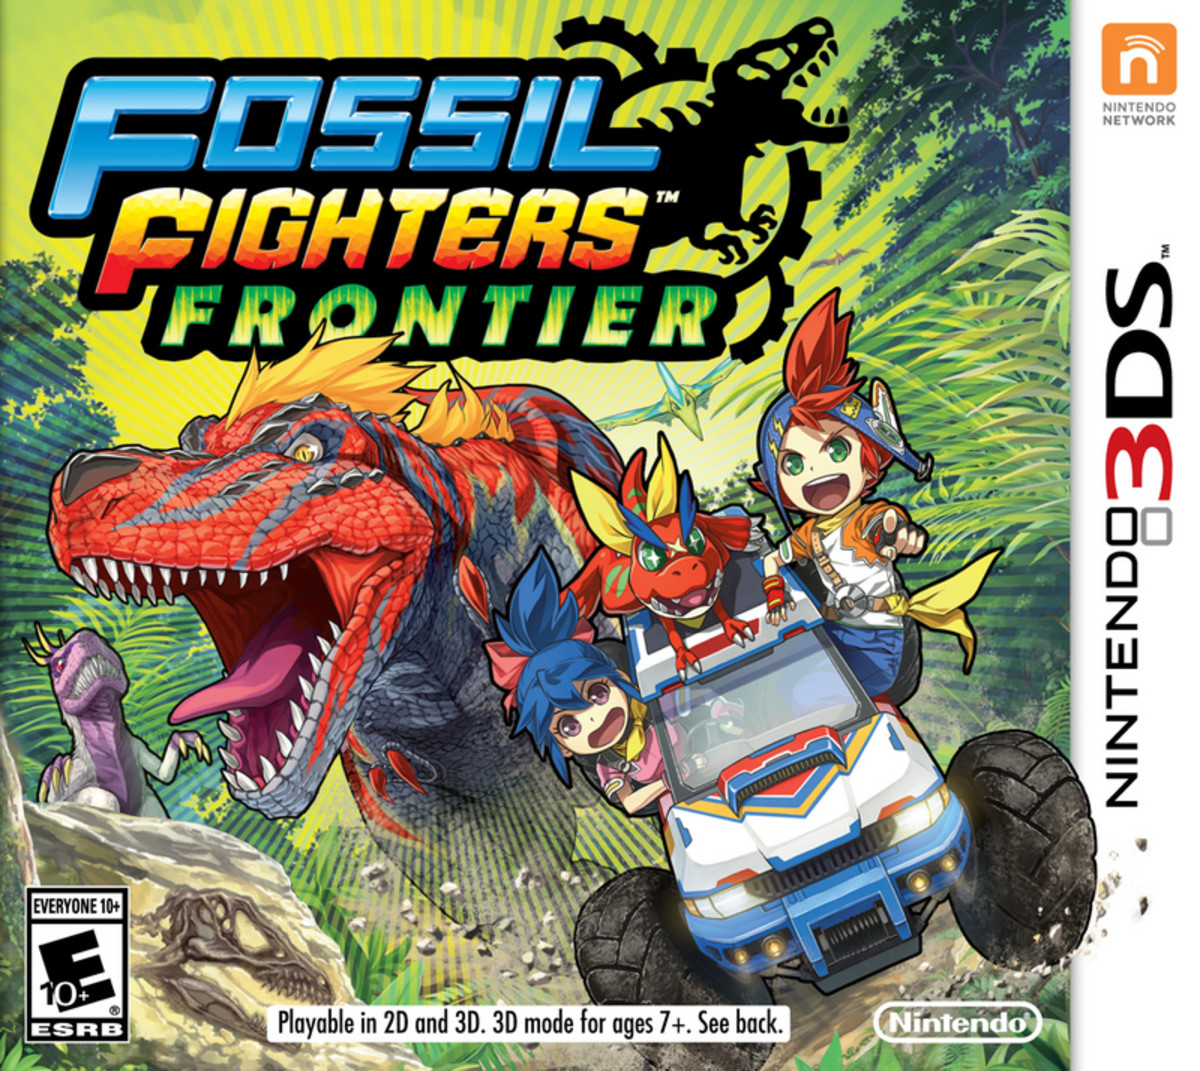 Box art for Fossil Fighters: Frontier for Nintendo 3DS.